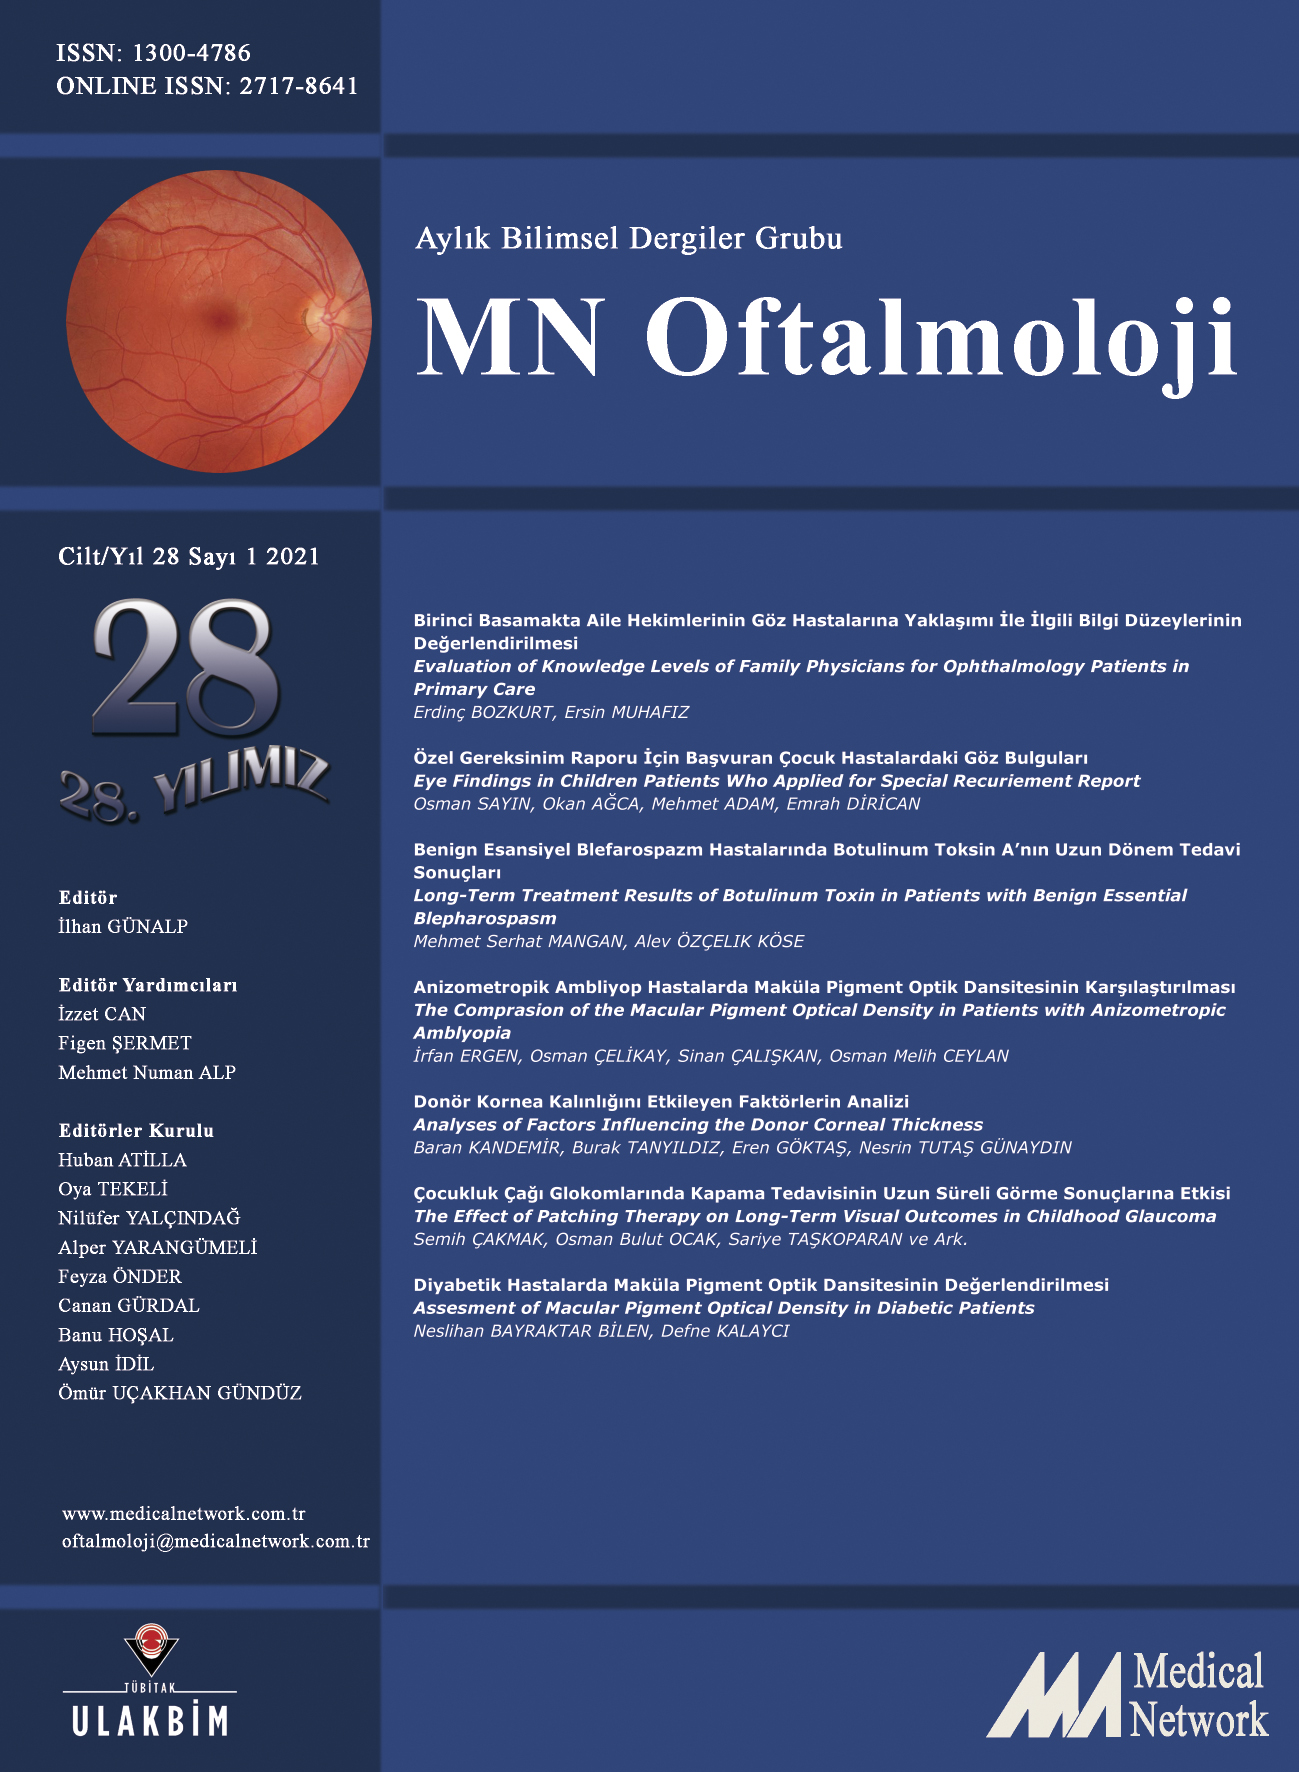 <p>MN Oftalmoloji Cilt: 28 Sayı: 1 2021 (MN Ophthalmology Volume: 28 No: 1 2021)</p>